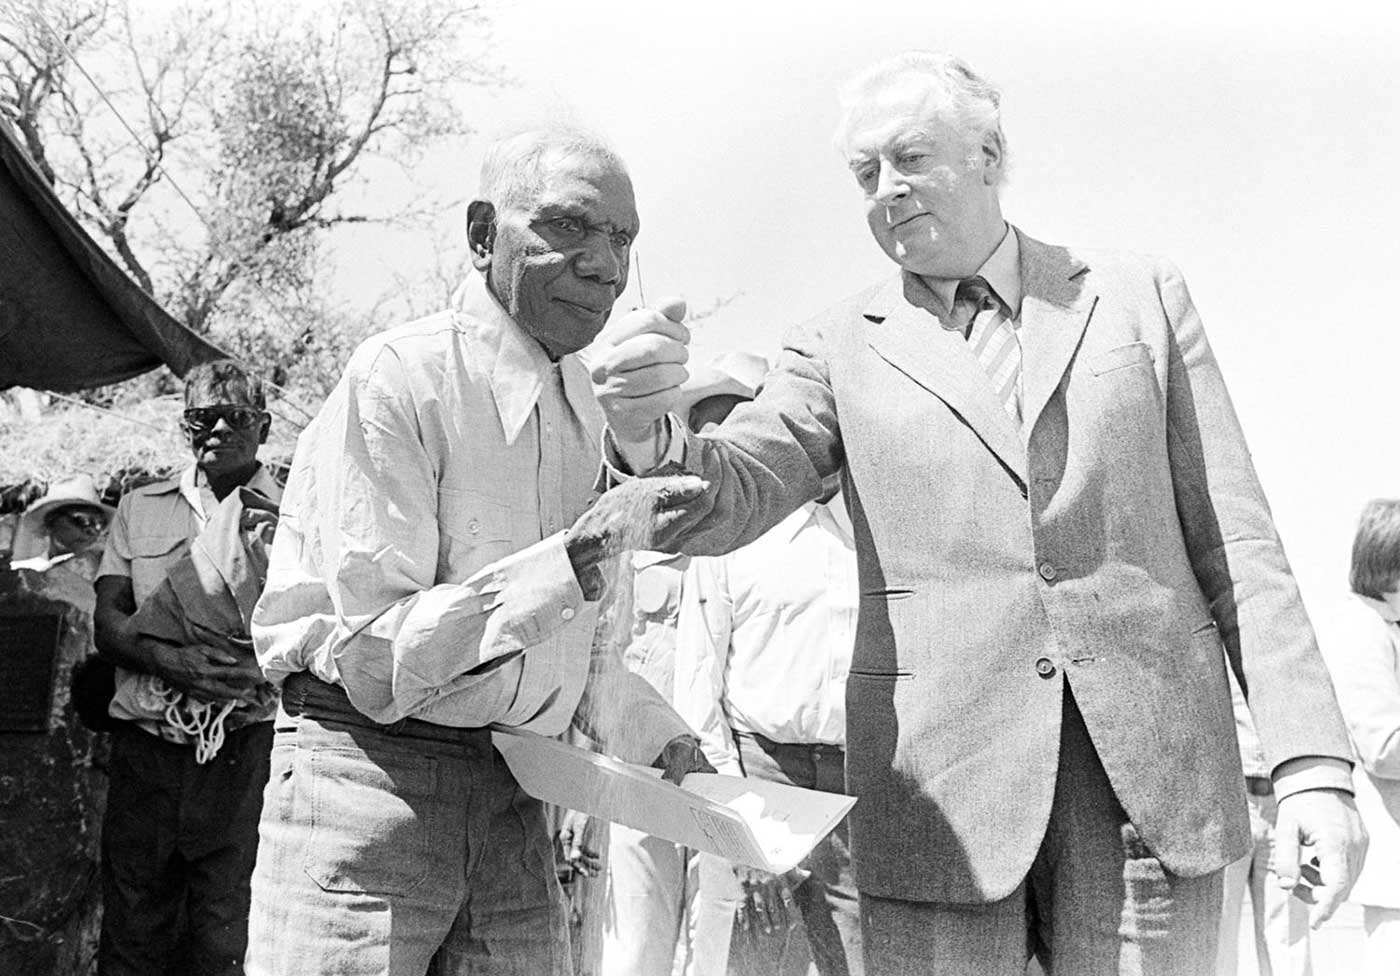 Black and white photo of Gough Whitlam pouring sand into Vincent Lingiari's hand in front of spectators.